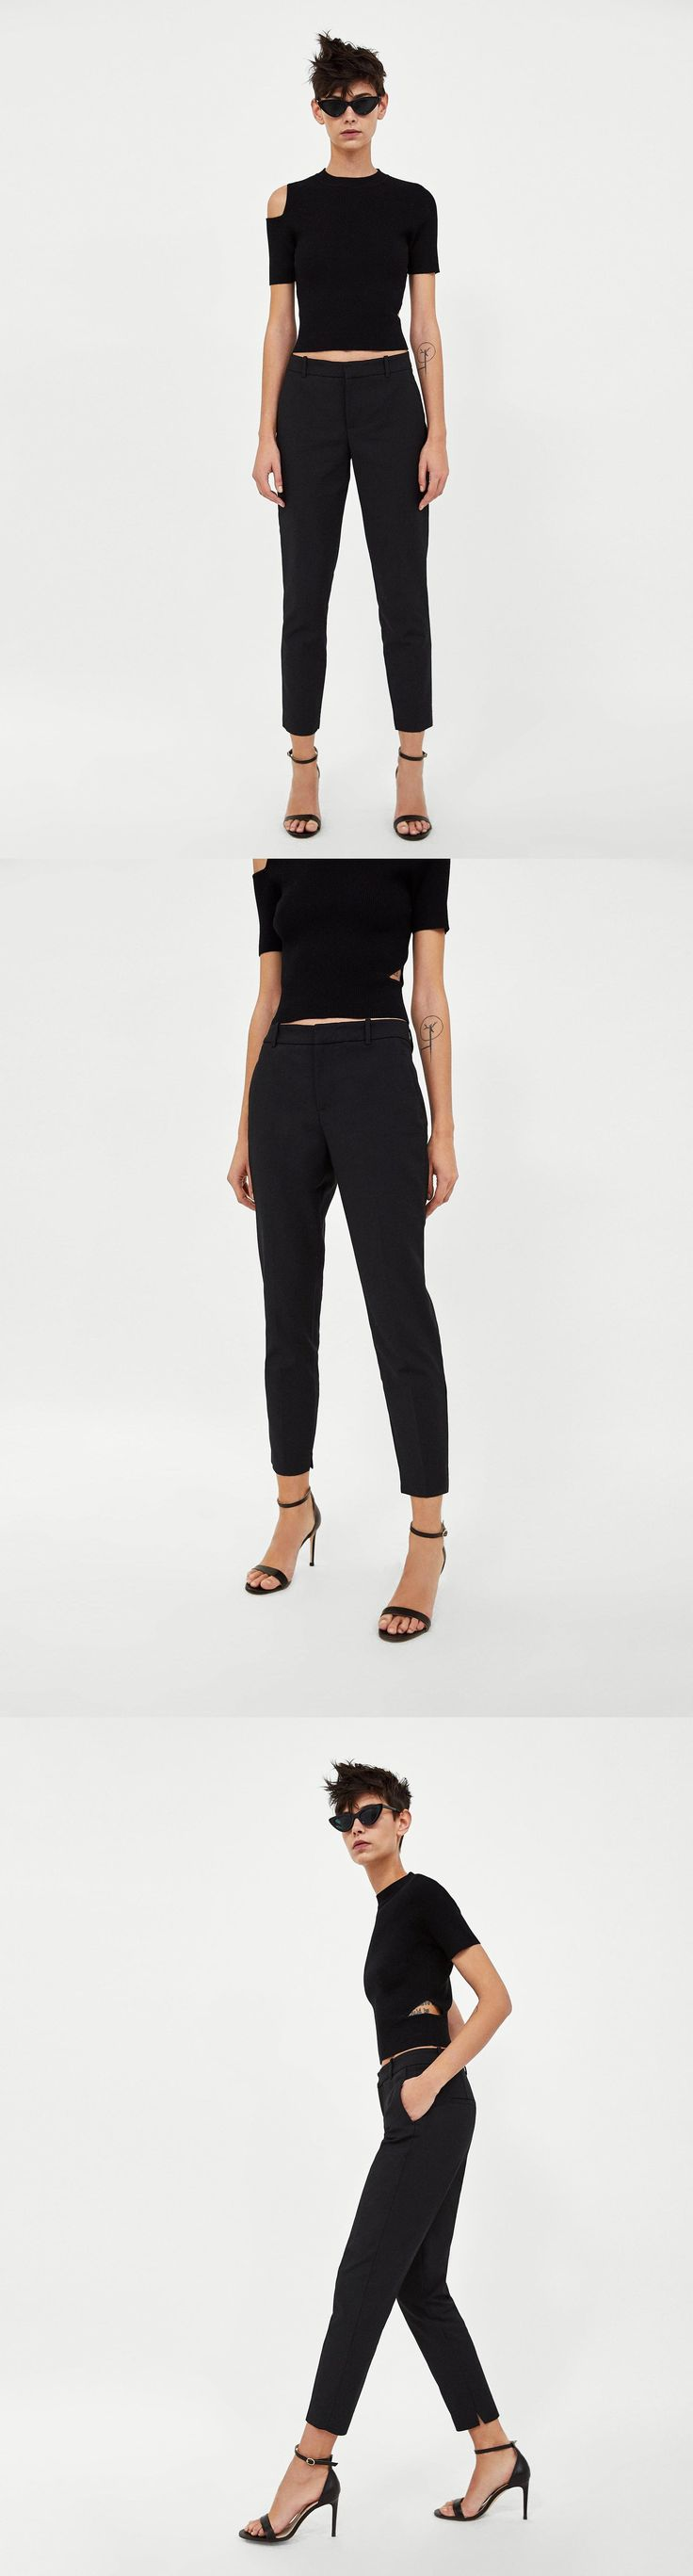 Straight Cut Trousers // 49.90 USD // Zara // Trousers with side pockets and piped back pockets. HEIGHT OF MODEL: 178 cm. / 5′ 10″